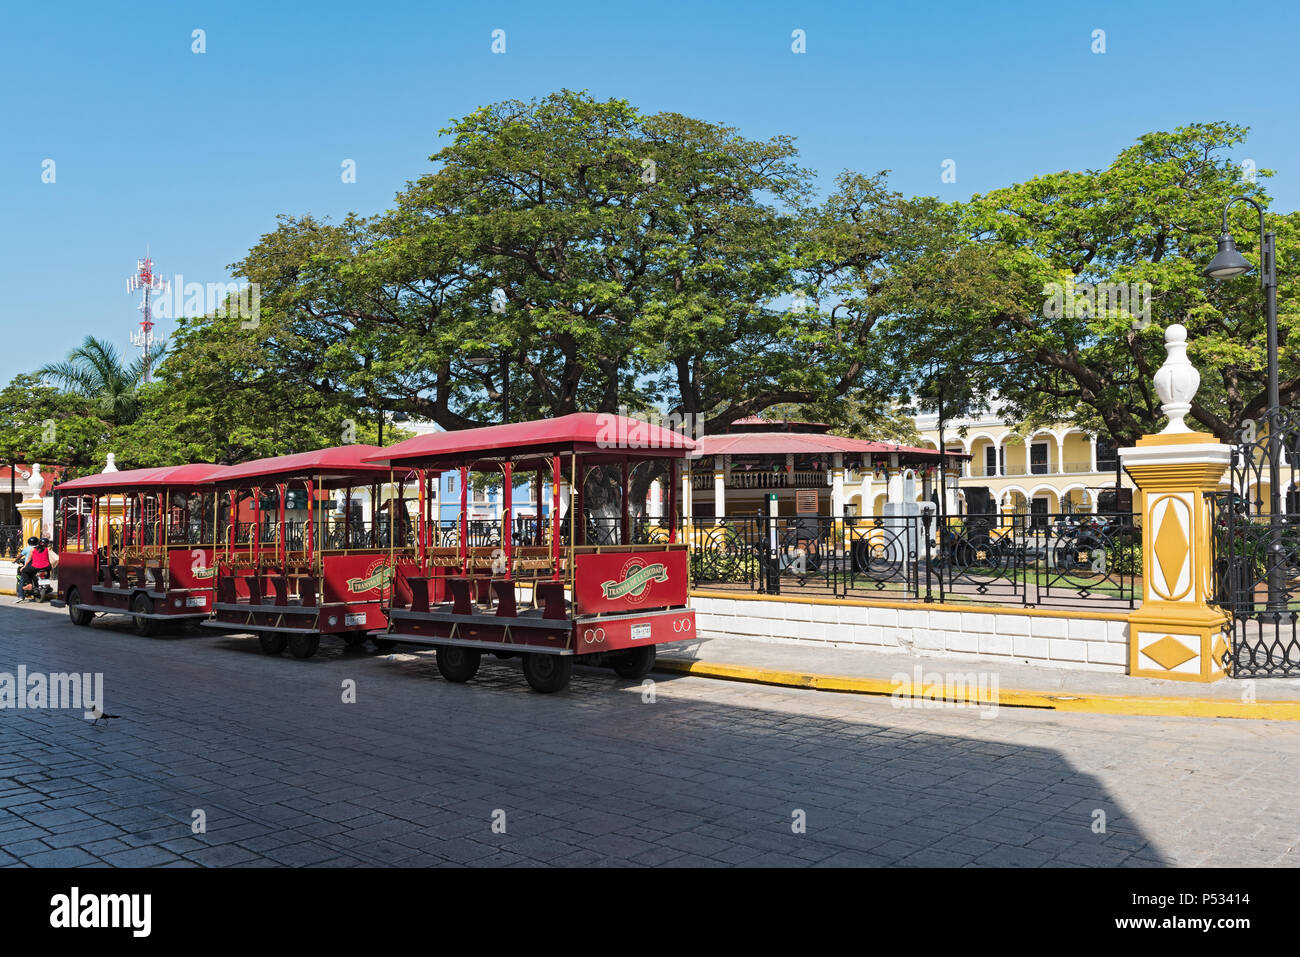 Independence Plaza with tourist train, campeche, mexico - Stock Image